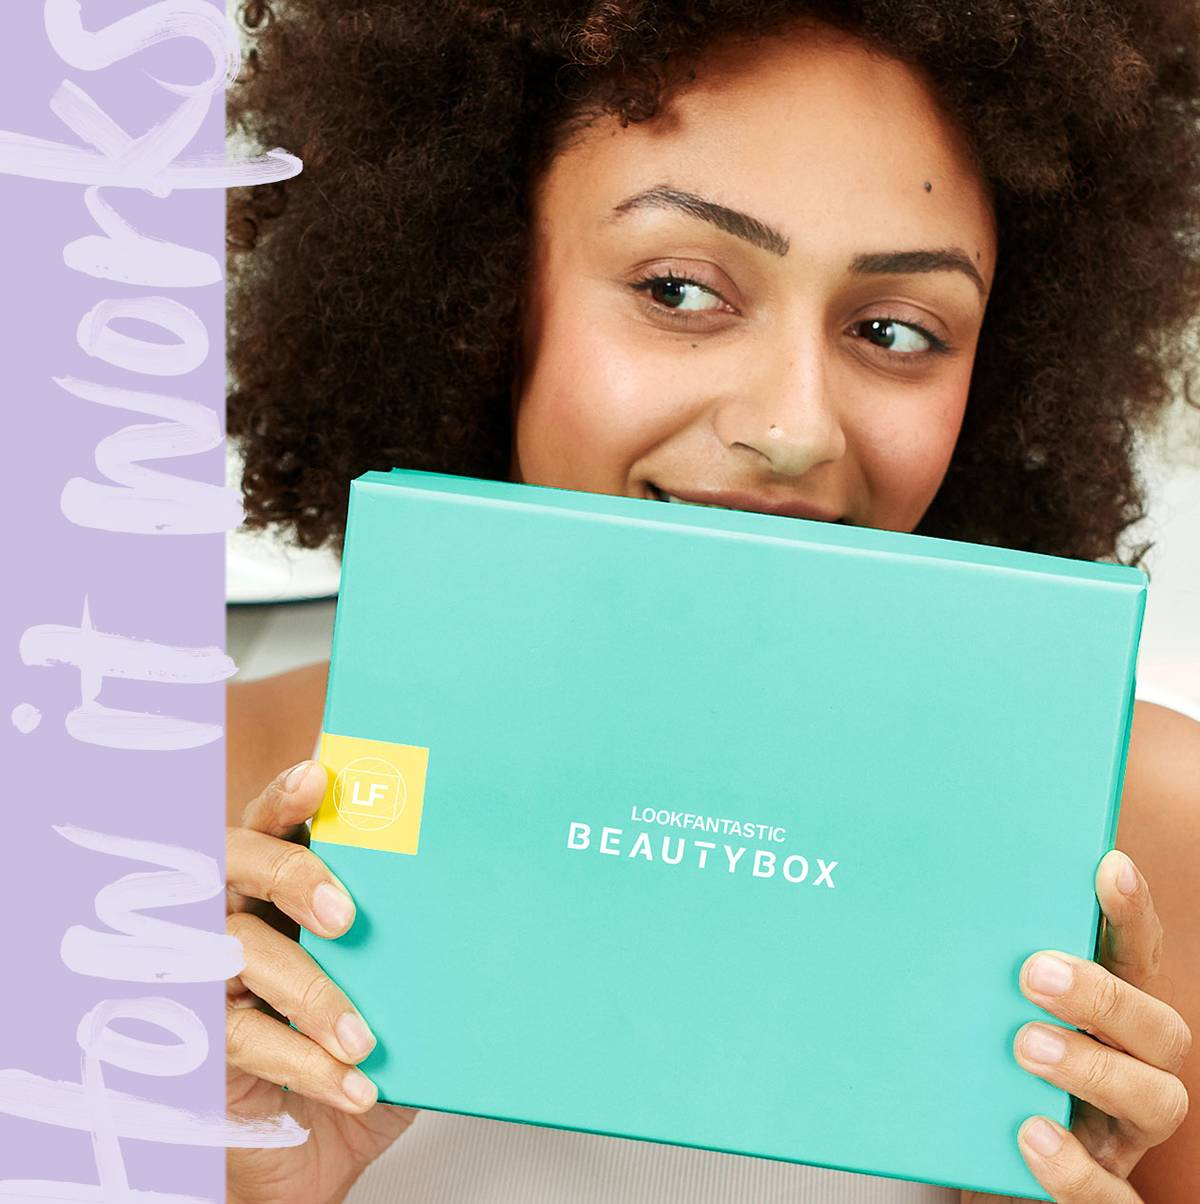 Learn more about the lookfantastic Beauty Box, a monthly subscription that delivers 6 curated beauty products worth over £50 to a global community of subscribers. Discover a subscription that works for you from our 1, 3, 6 or 12 month plans.